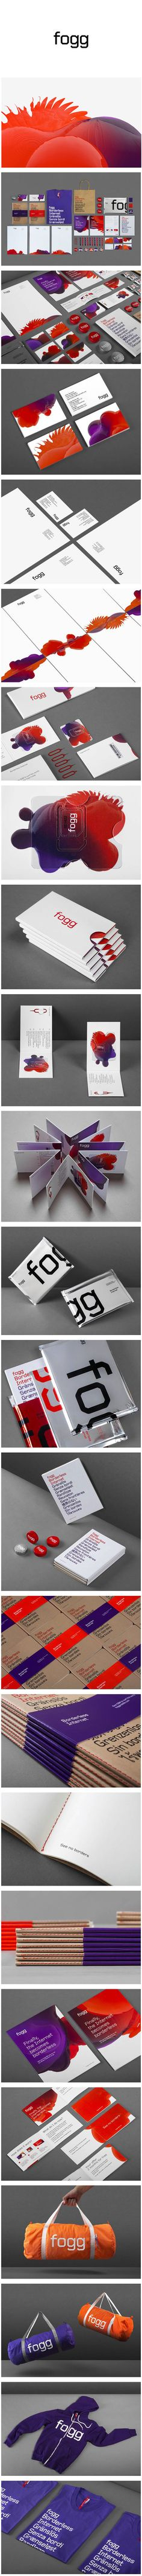 Brand identity, collateral and website design for a global Internet access solution, Fogg mobile. Brand Identity Design, Graphic Design Branding, Corporate Design, Corporate Identity, Visual Identity, Logo Design, Typography Logo, Logo Branding, Curriculum Vitae